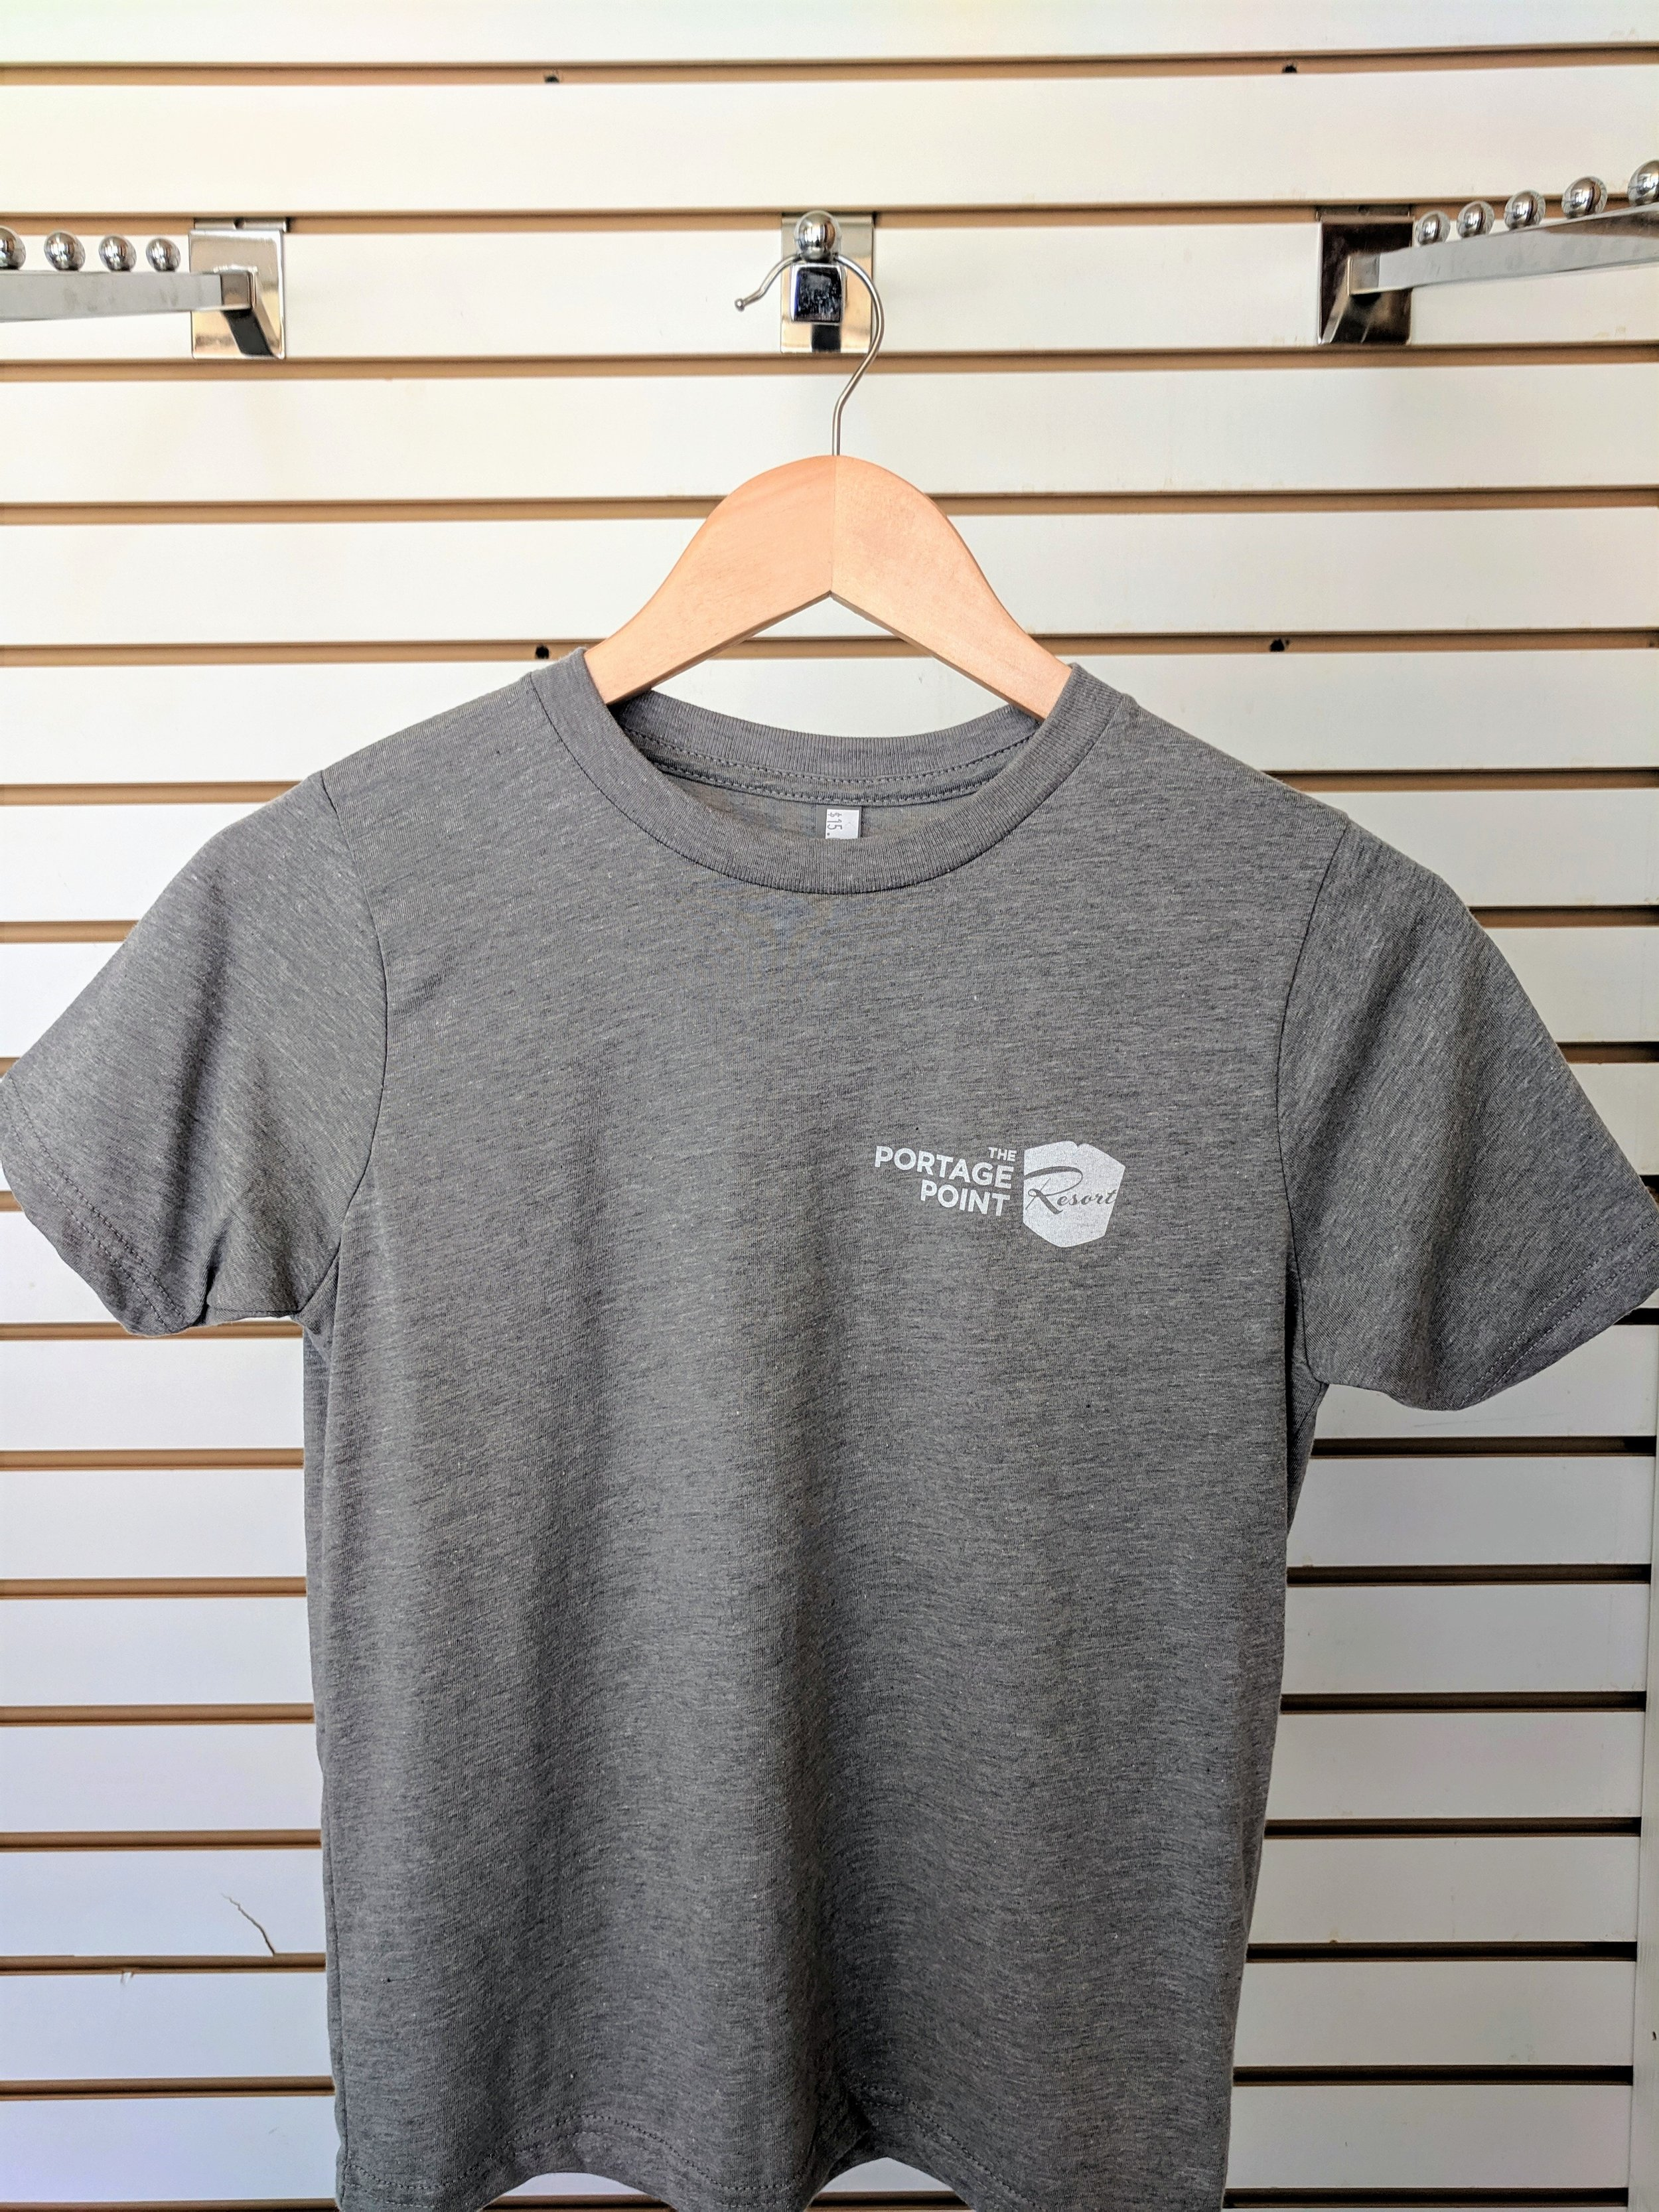 YOUTH T-SHIRT - $20